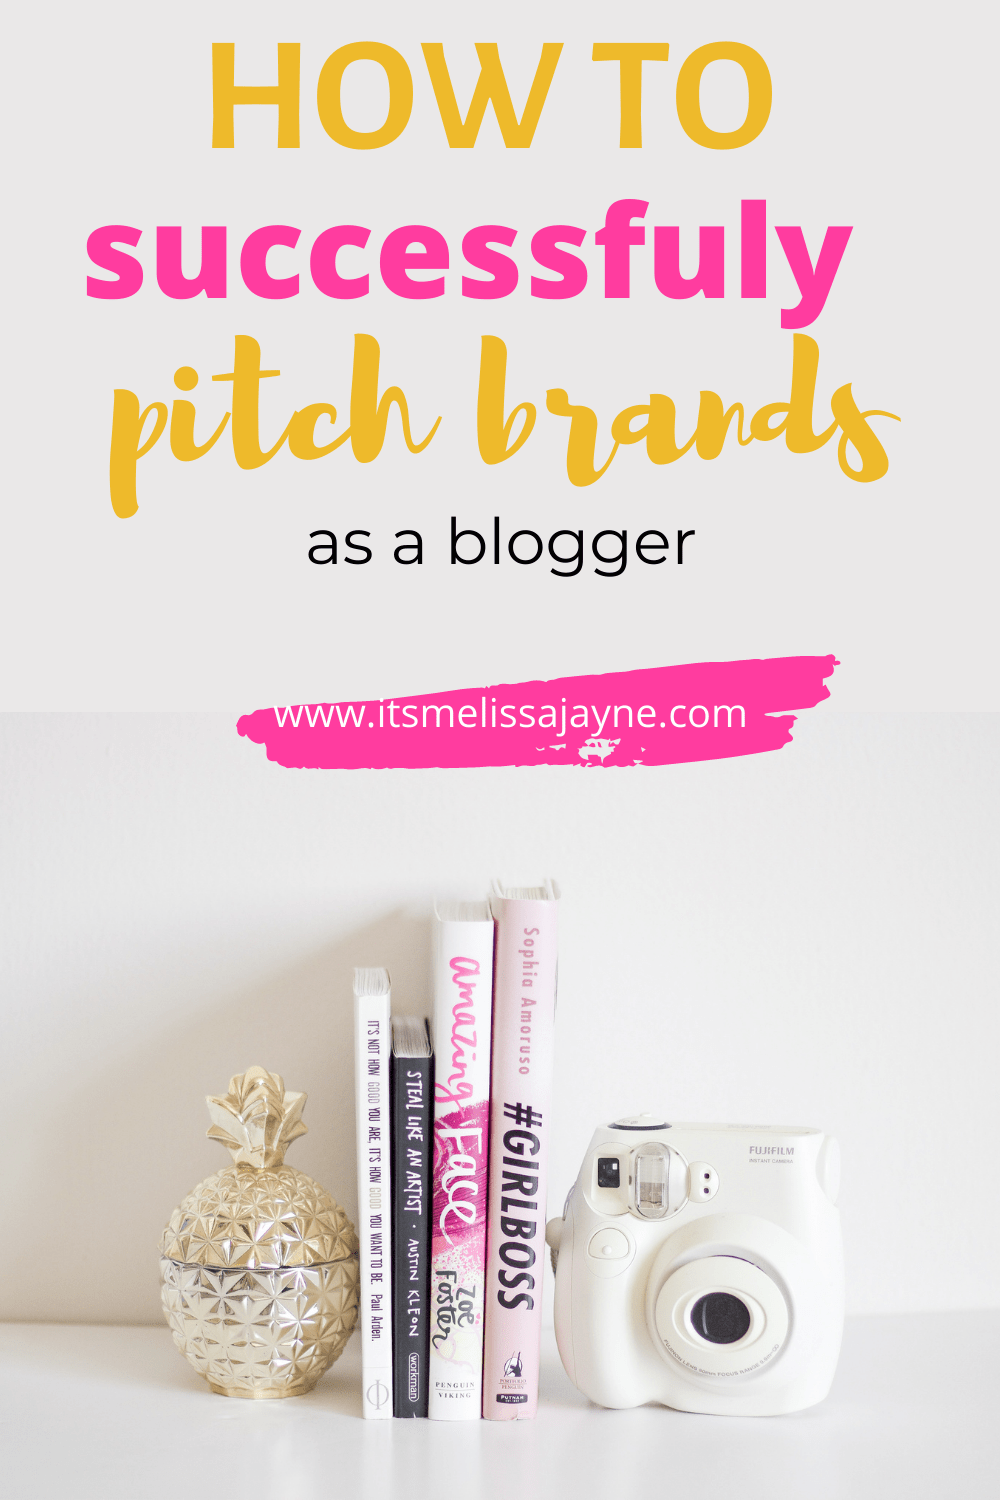 How to successfully pitch brands as a blogger